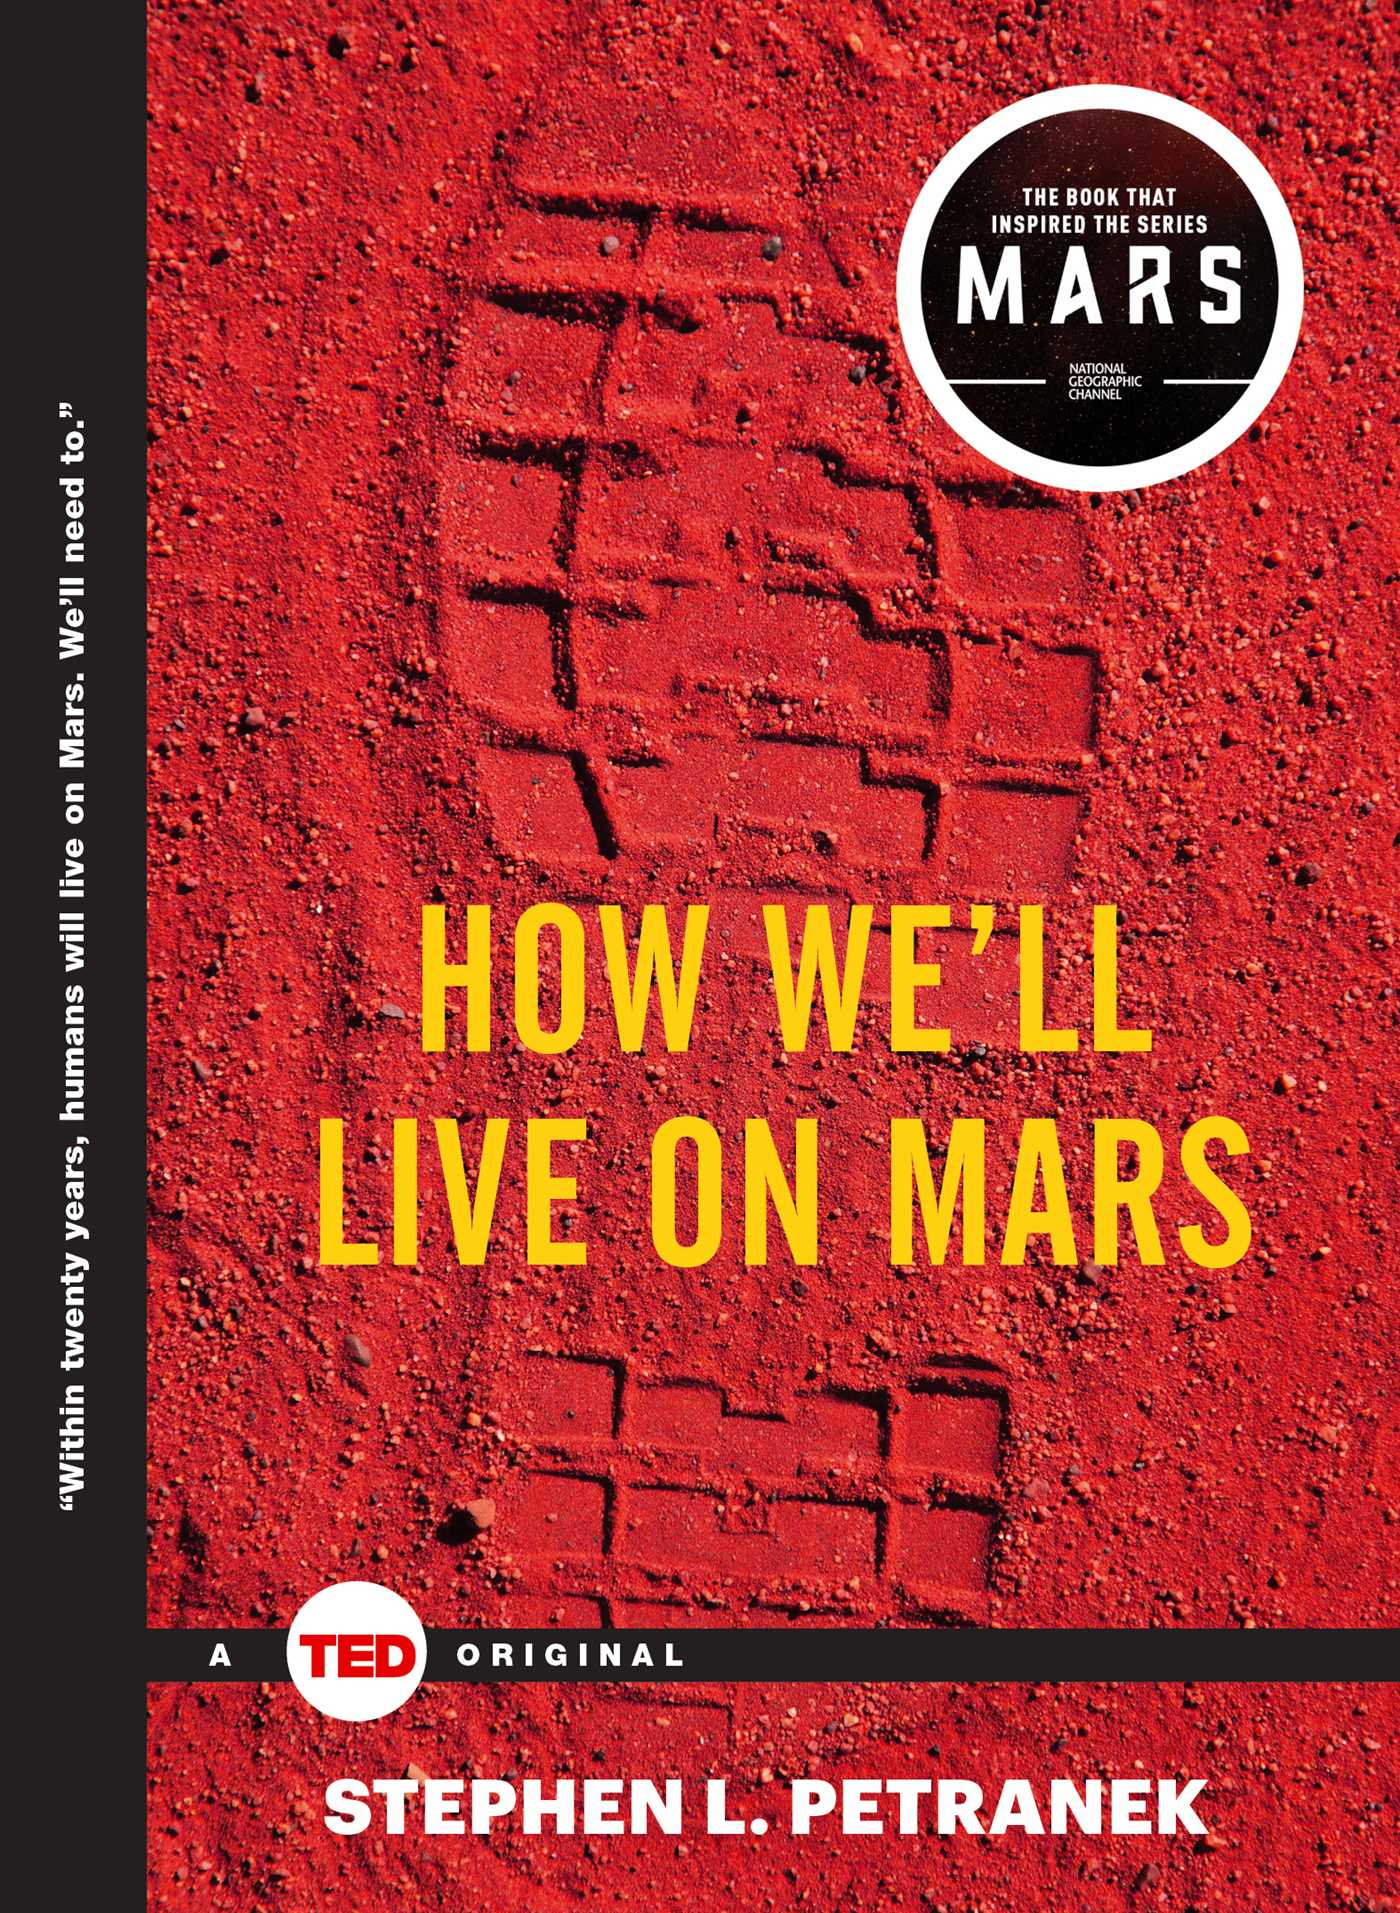 How well live on mars 9781476784779 hr